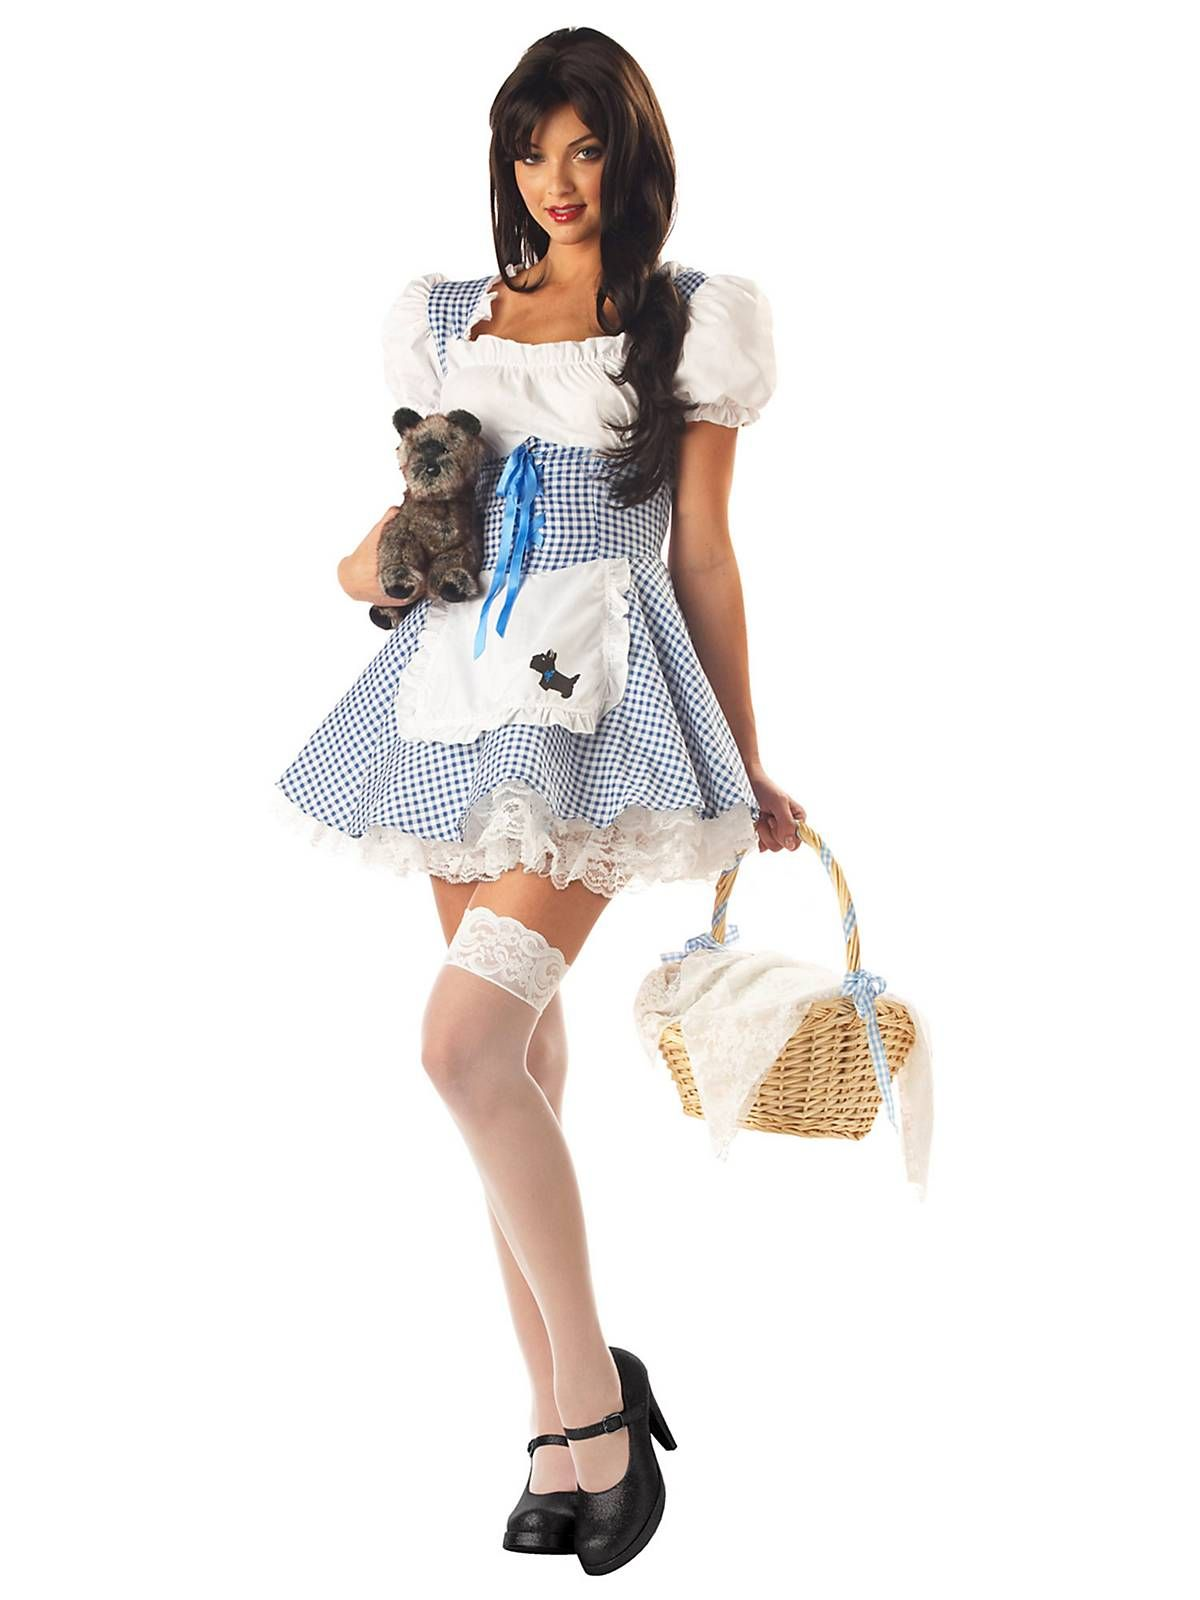 She\'s sweet, innocent, and just wants to go home. The costume ...